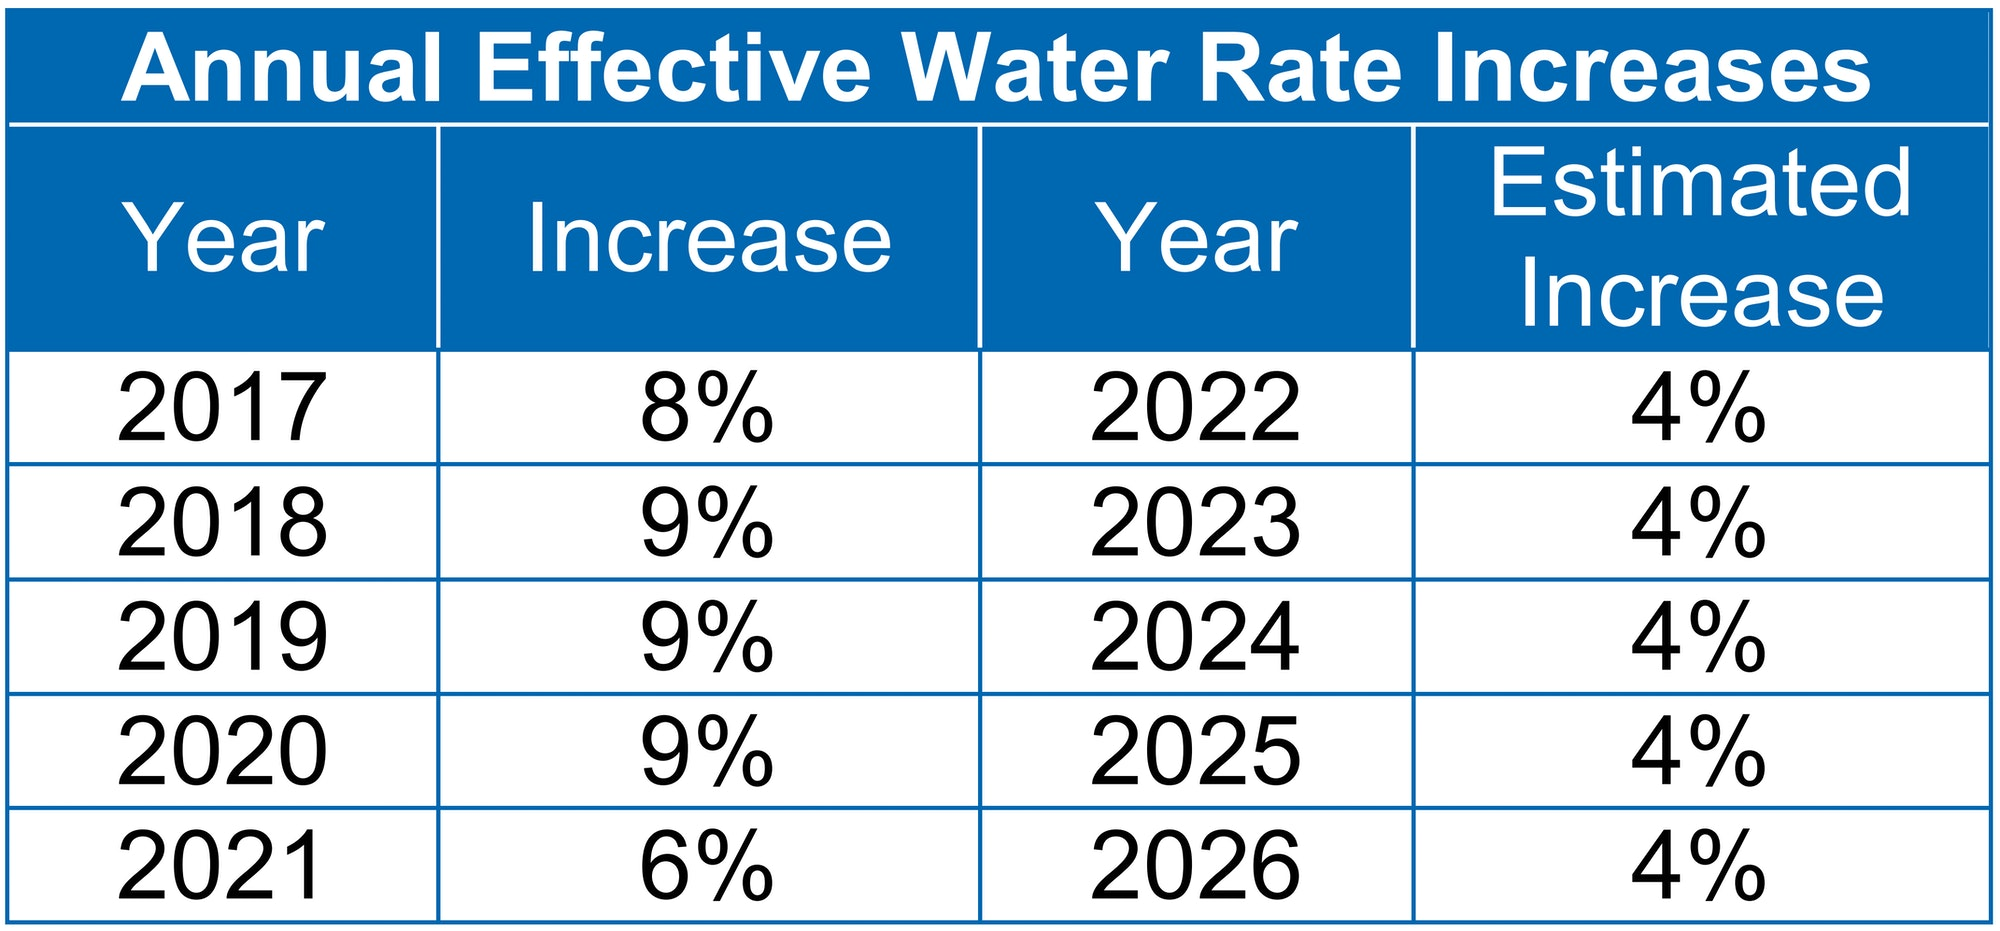 Annual Effective Water Rate Increases